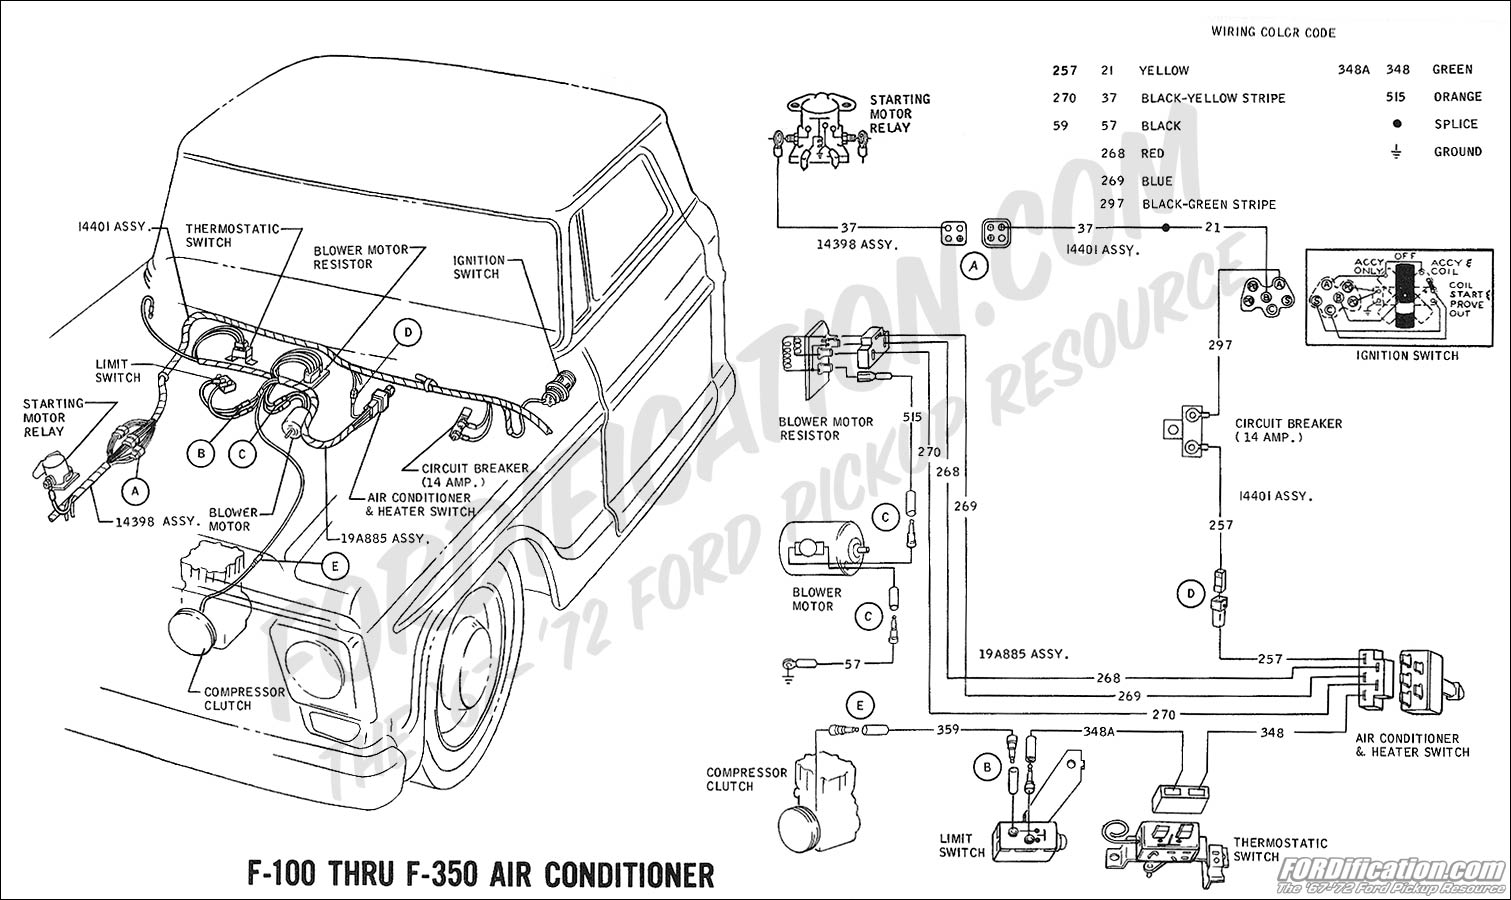 wiring_69ac 1999 ford f 150 radio wiring diagram chevy truck wiring diagram 1999 cadillac deville radio wiring diagram at n-0.co